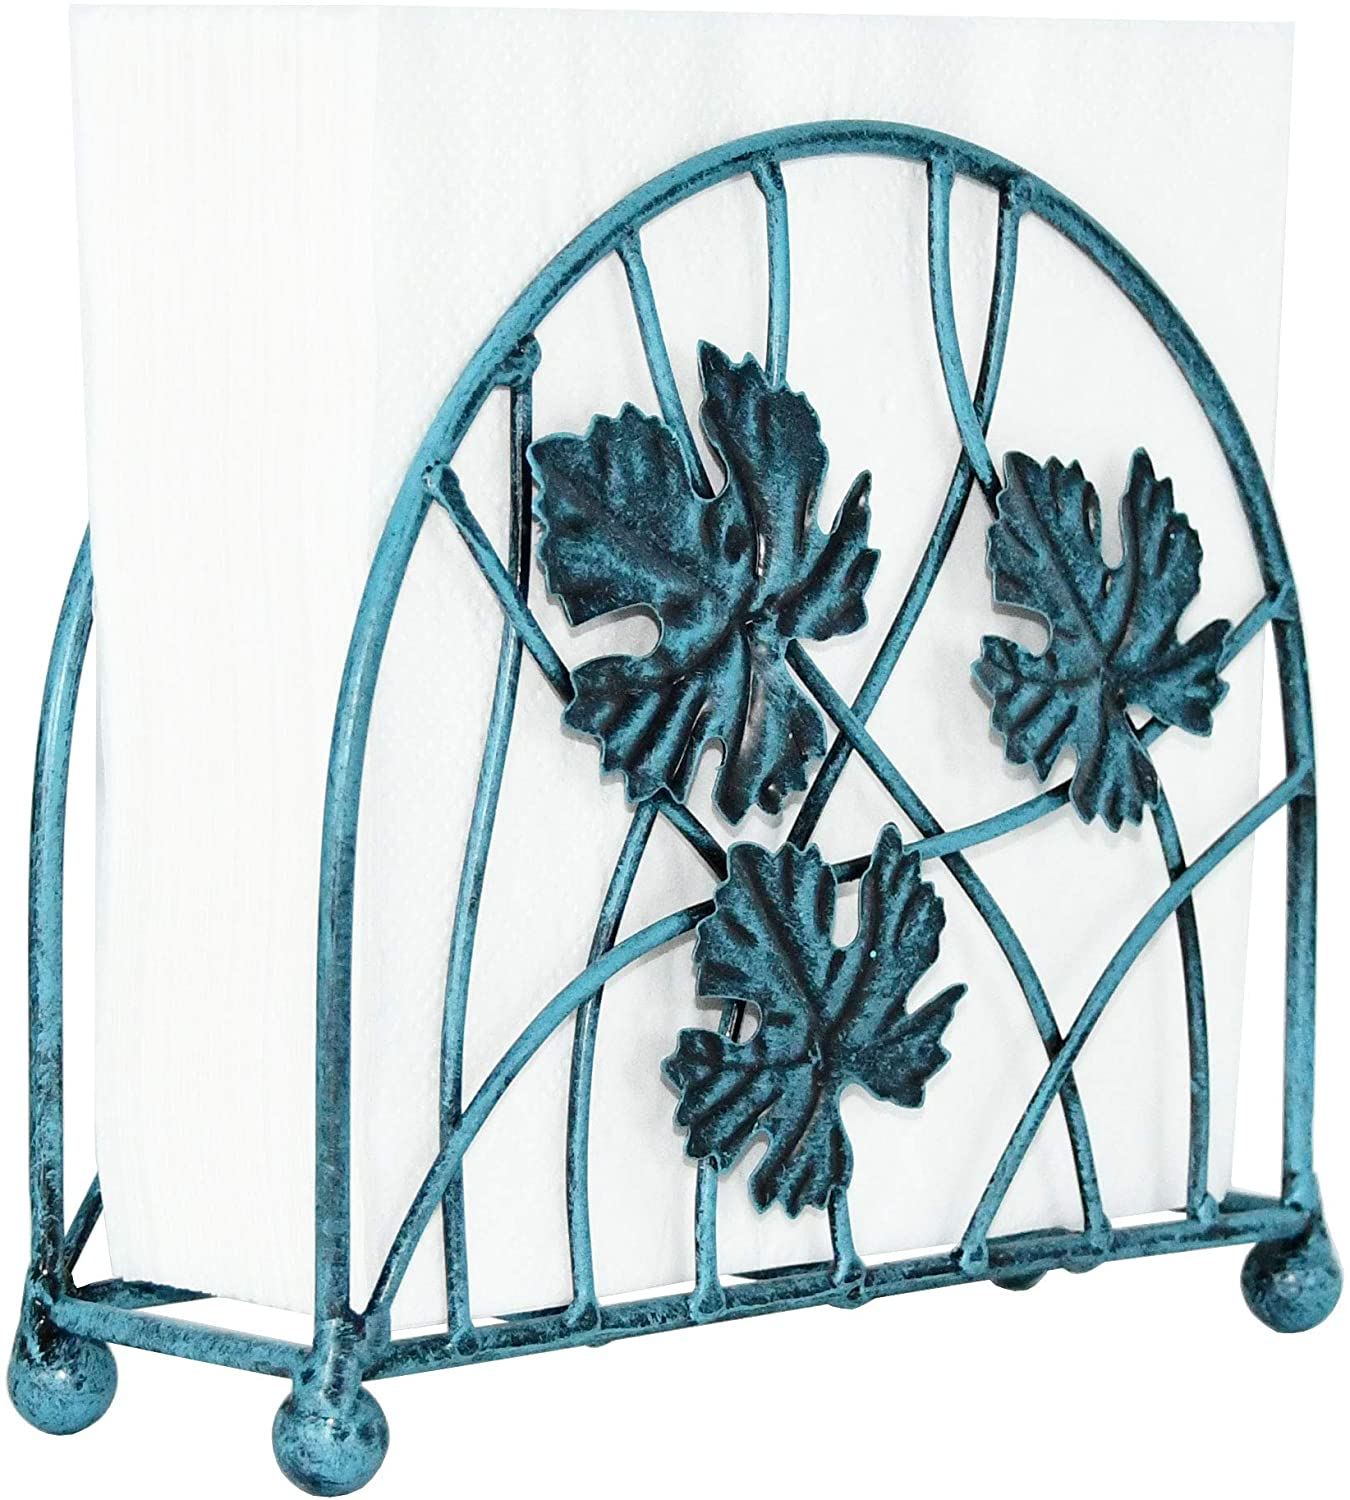 OwlGift Antique Metal 6-Leafed & Branches Design Napkin Holder, Vertical Kitchen Tabletop Dispenser, dining table & Kitchen Décor, Farmhouse Upright Napkin Storage Organizer – Turquoise